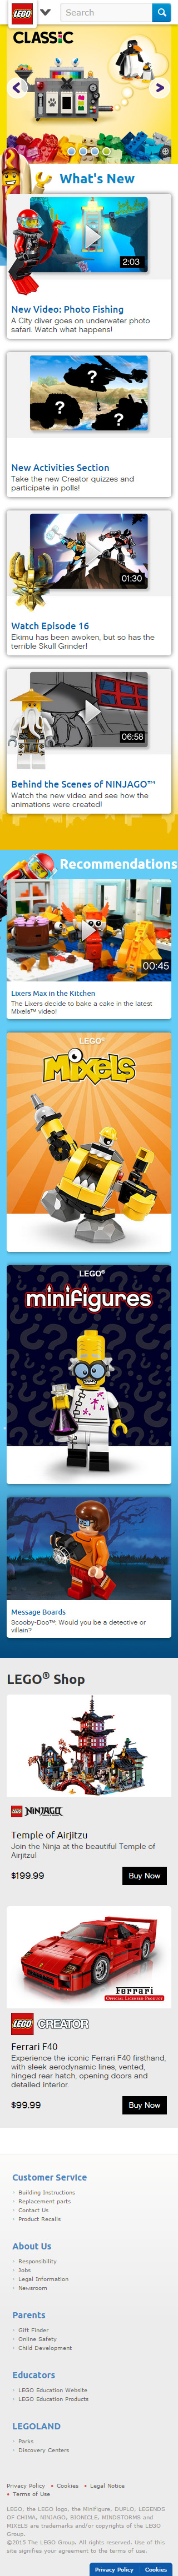 lego mobile-friendly website example